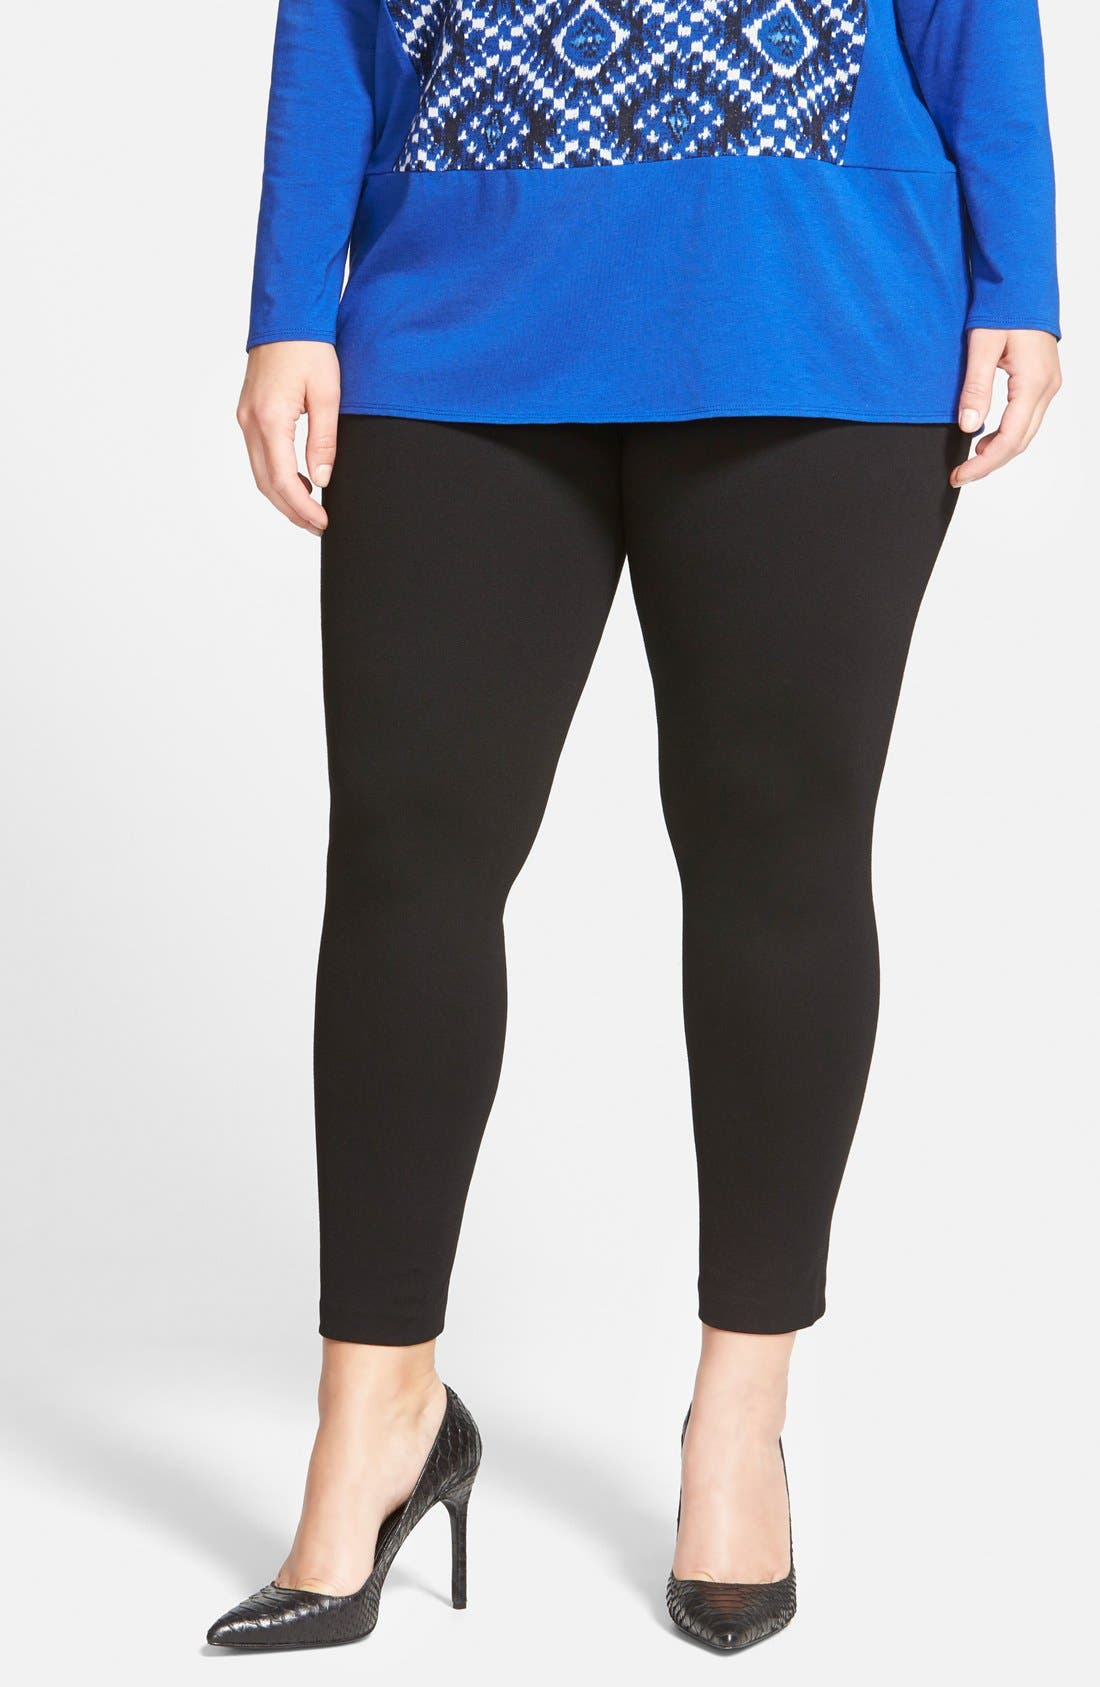 Plus Size Vince Camuto High Rise Leggings